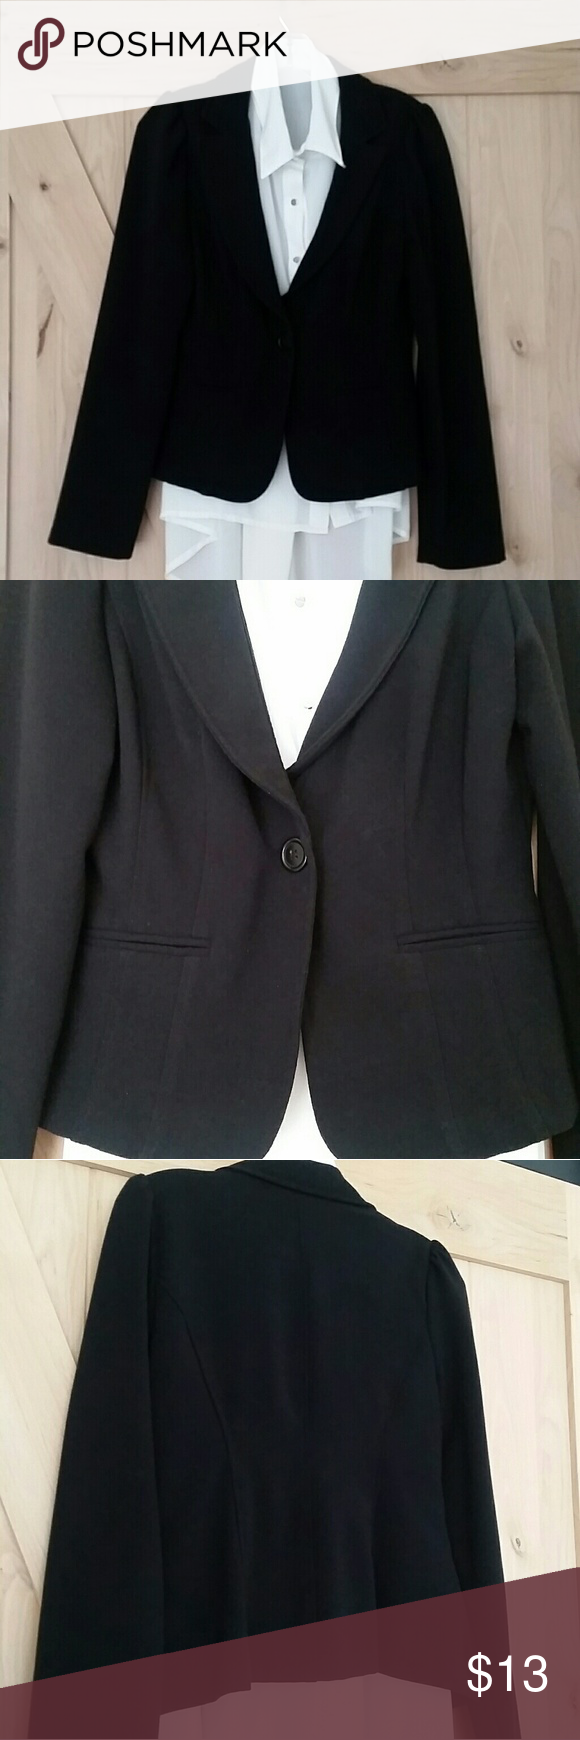 Black Blazer Black Blazer with faux front pockets.  Great condition,  not faded in color,  jet black. Jackets & Coats Blazers